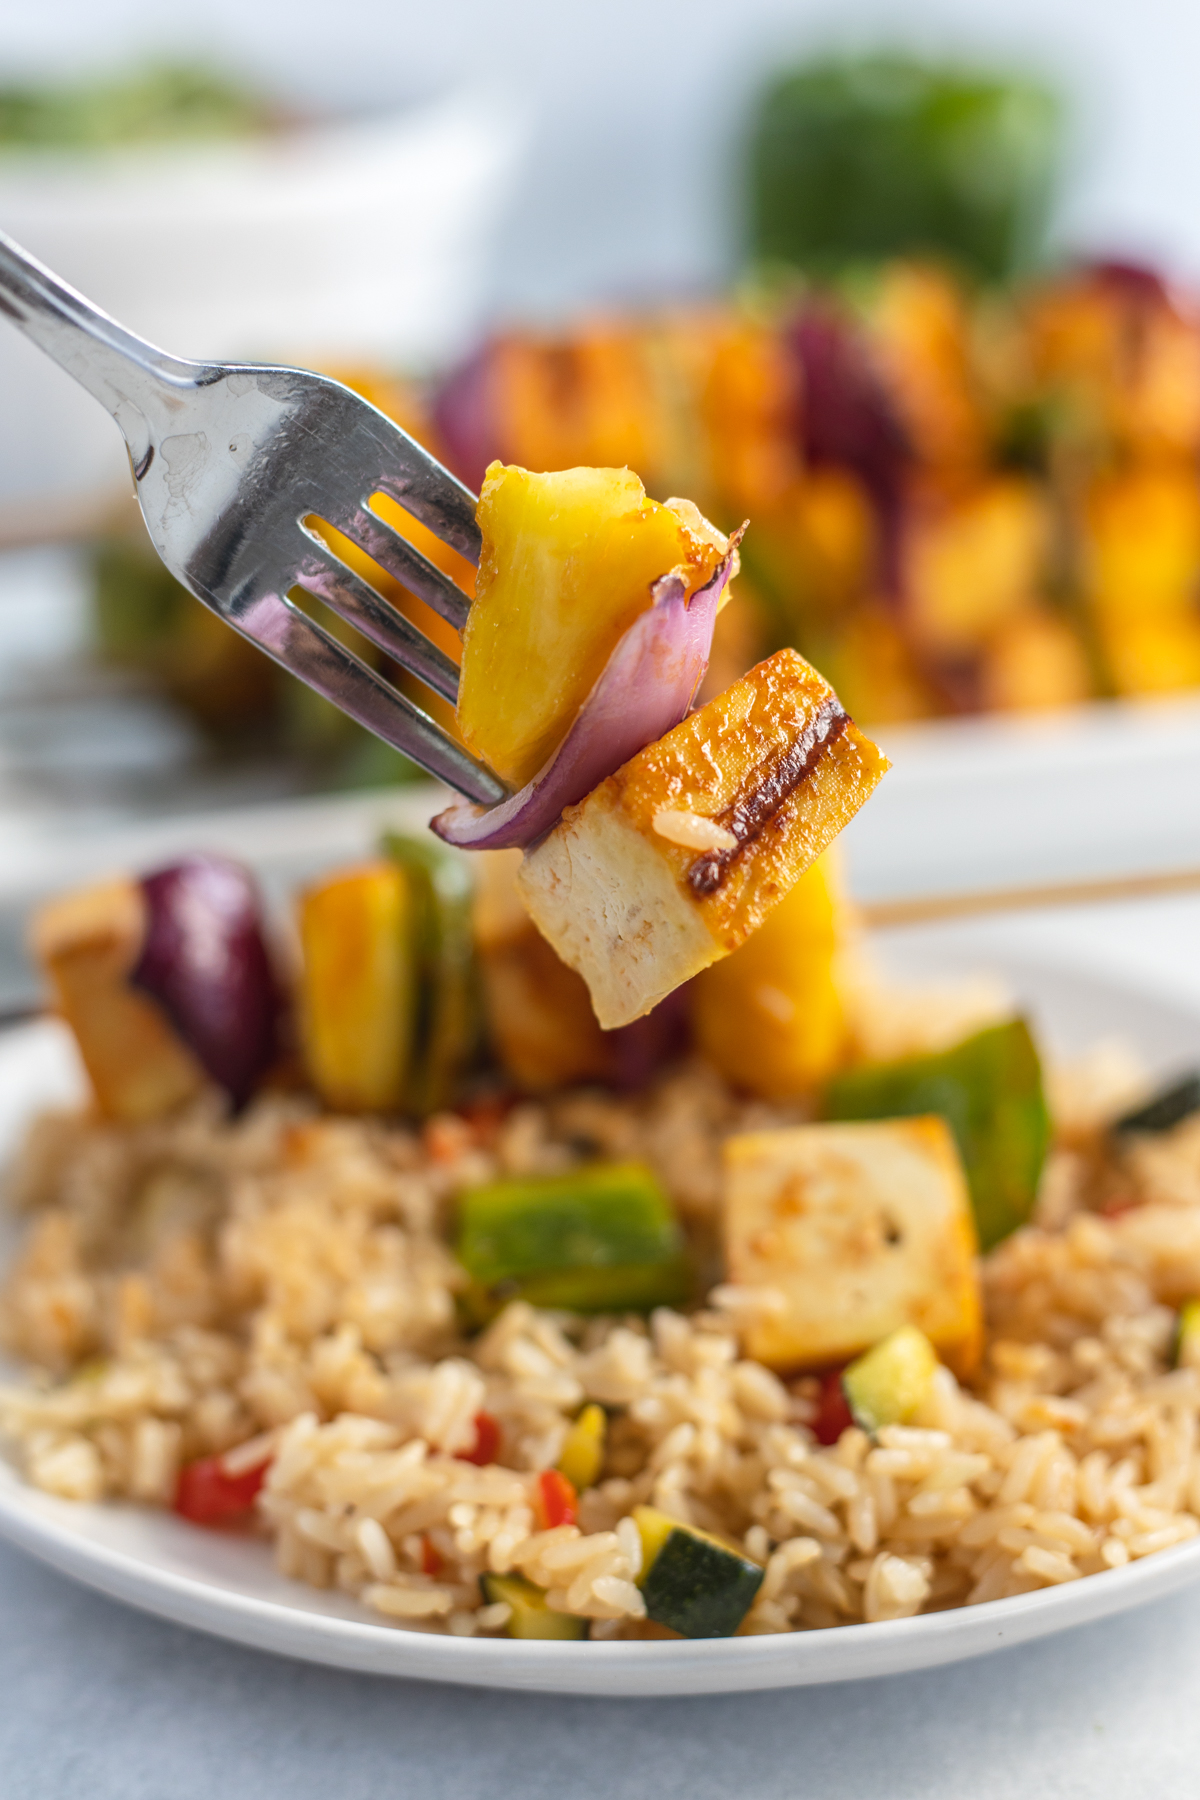 Fork with a piece of grilled tofu, pineapple, and red onion.